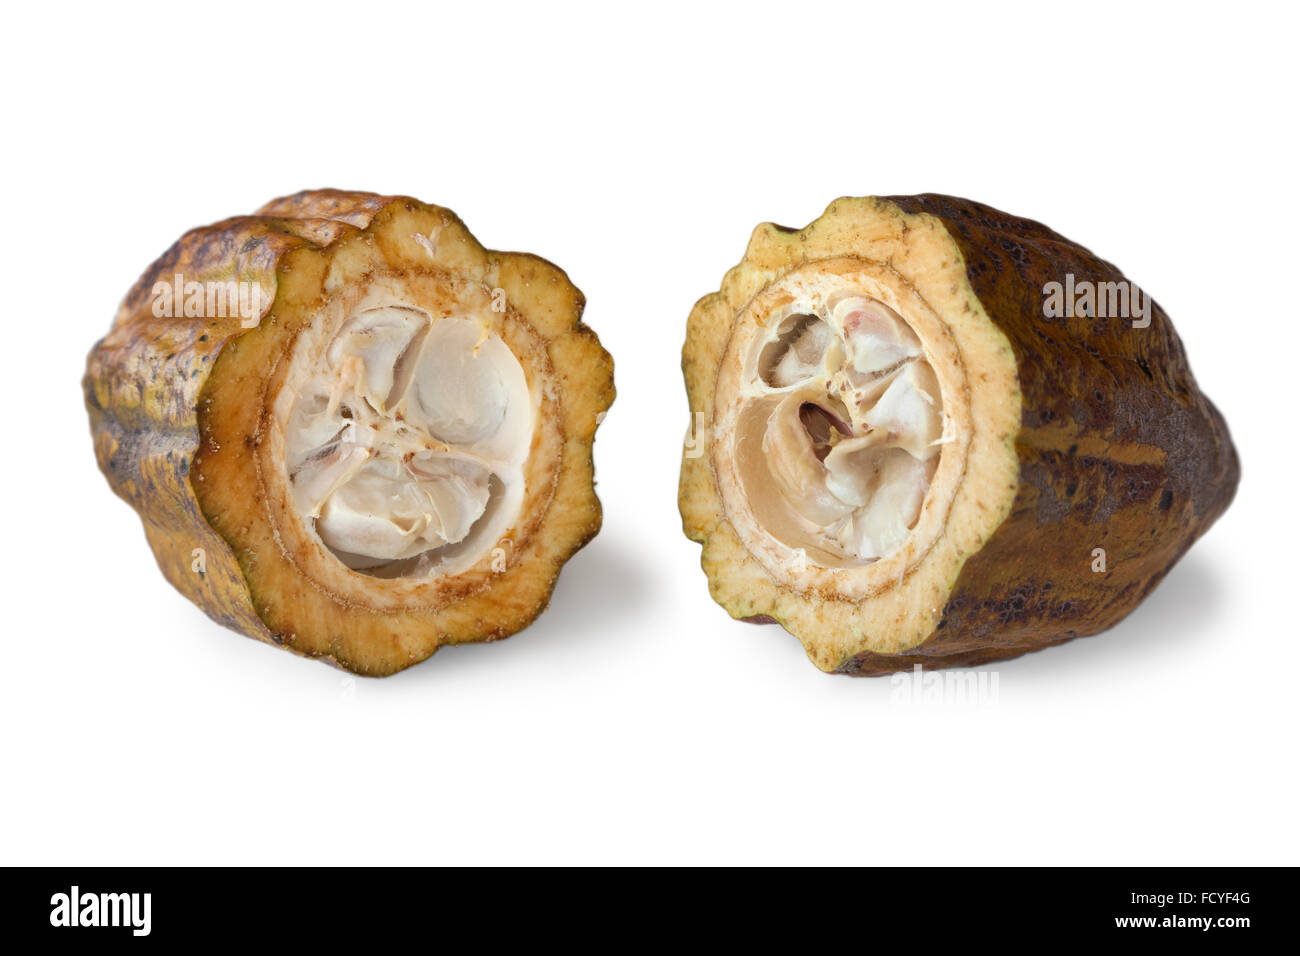 Cocoa beans in a cacao pod on white background - Stock Image